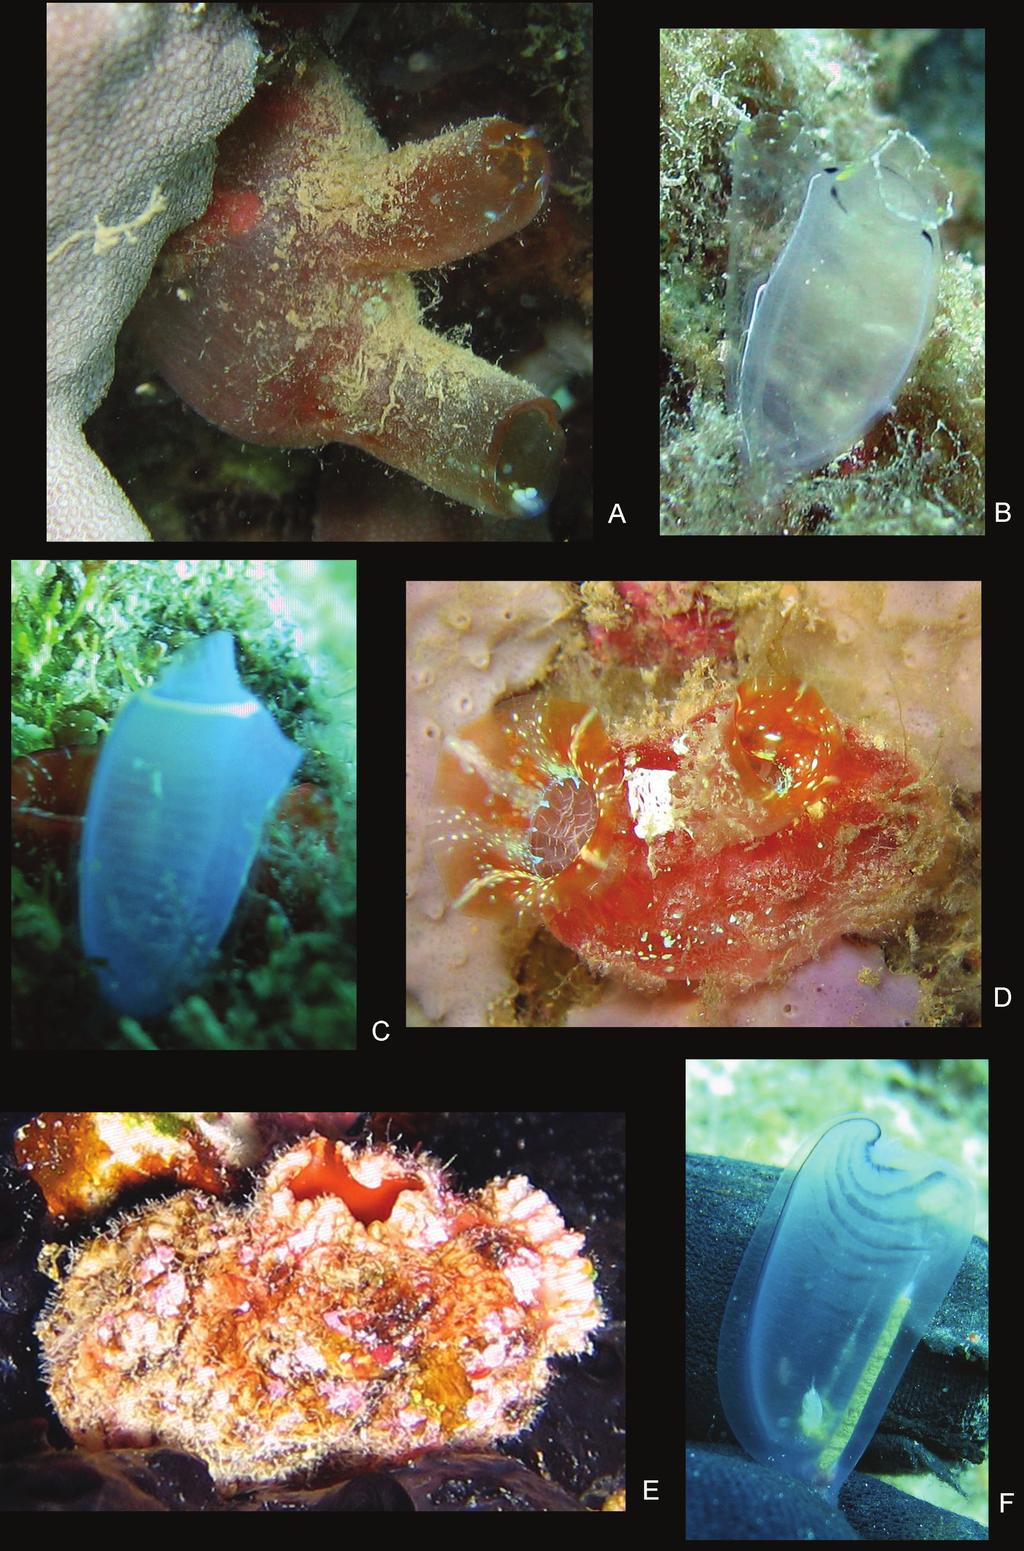 50 Kristine N. White & James Davis Reimer / ZooKeys 163: 13 55 (2012) Figure 18. Color plate of ascidian hosts.